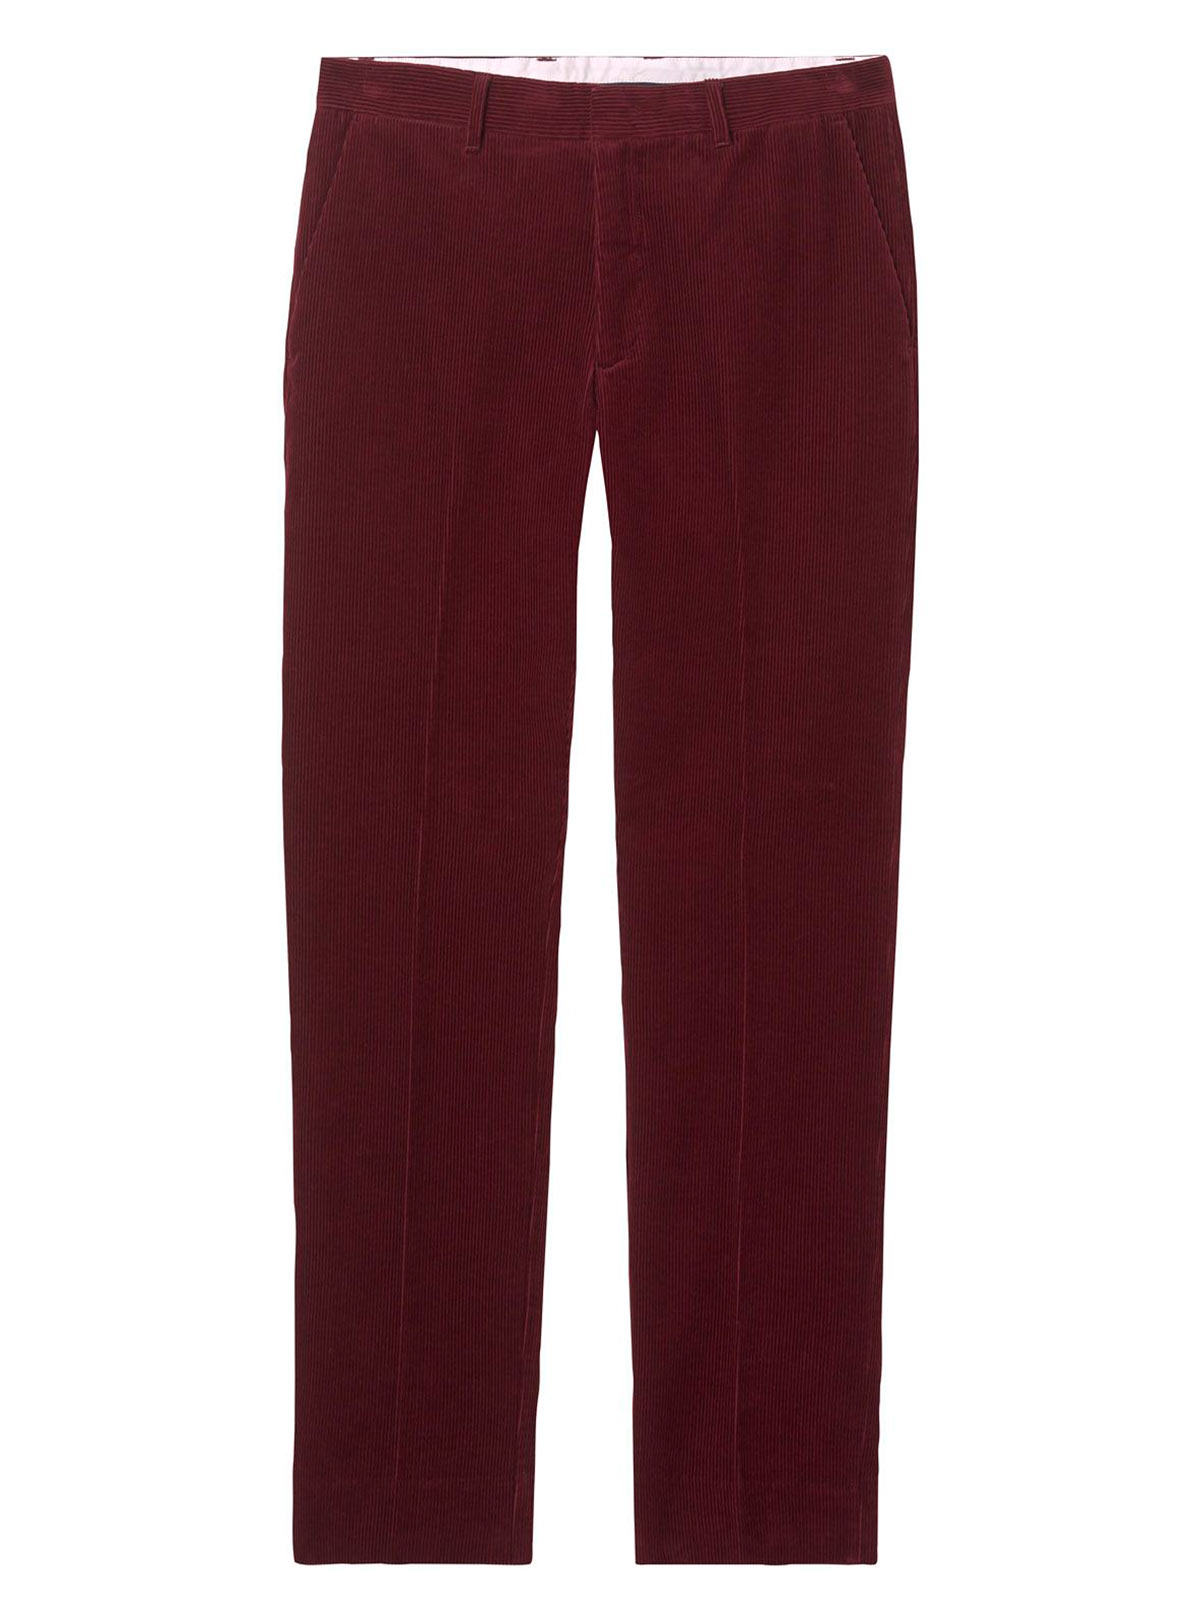 Picture of GANT | Men's Slim Cord Slacks